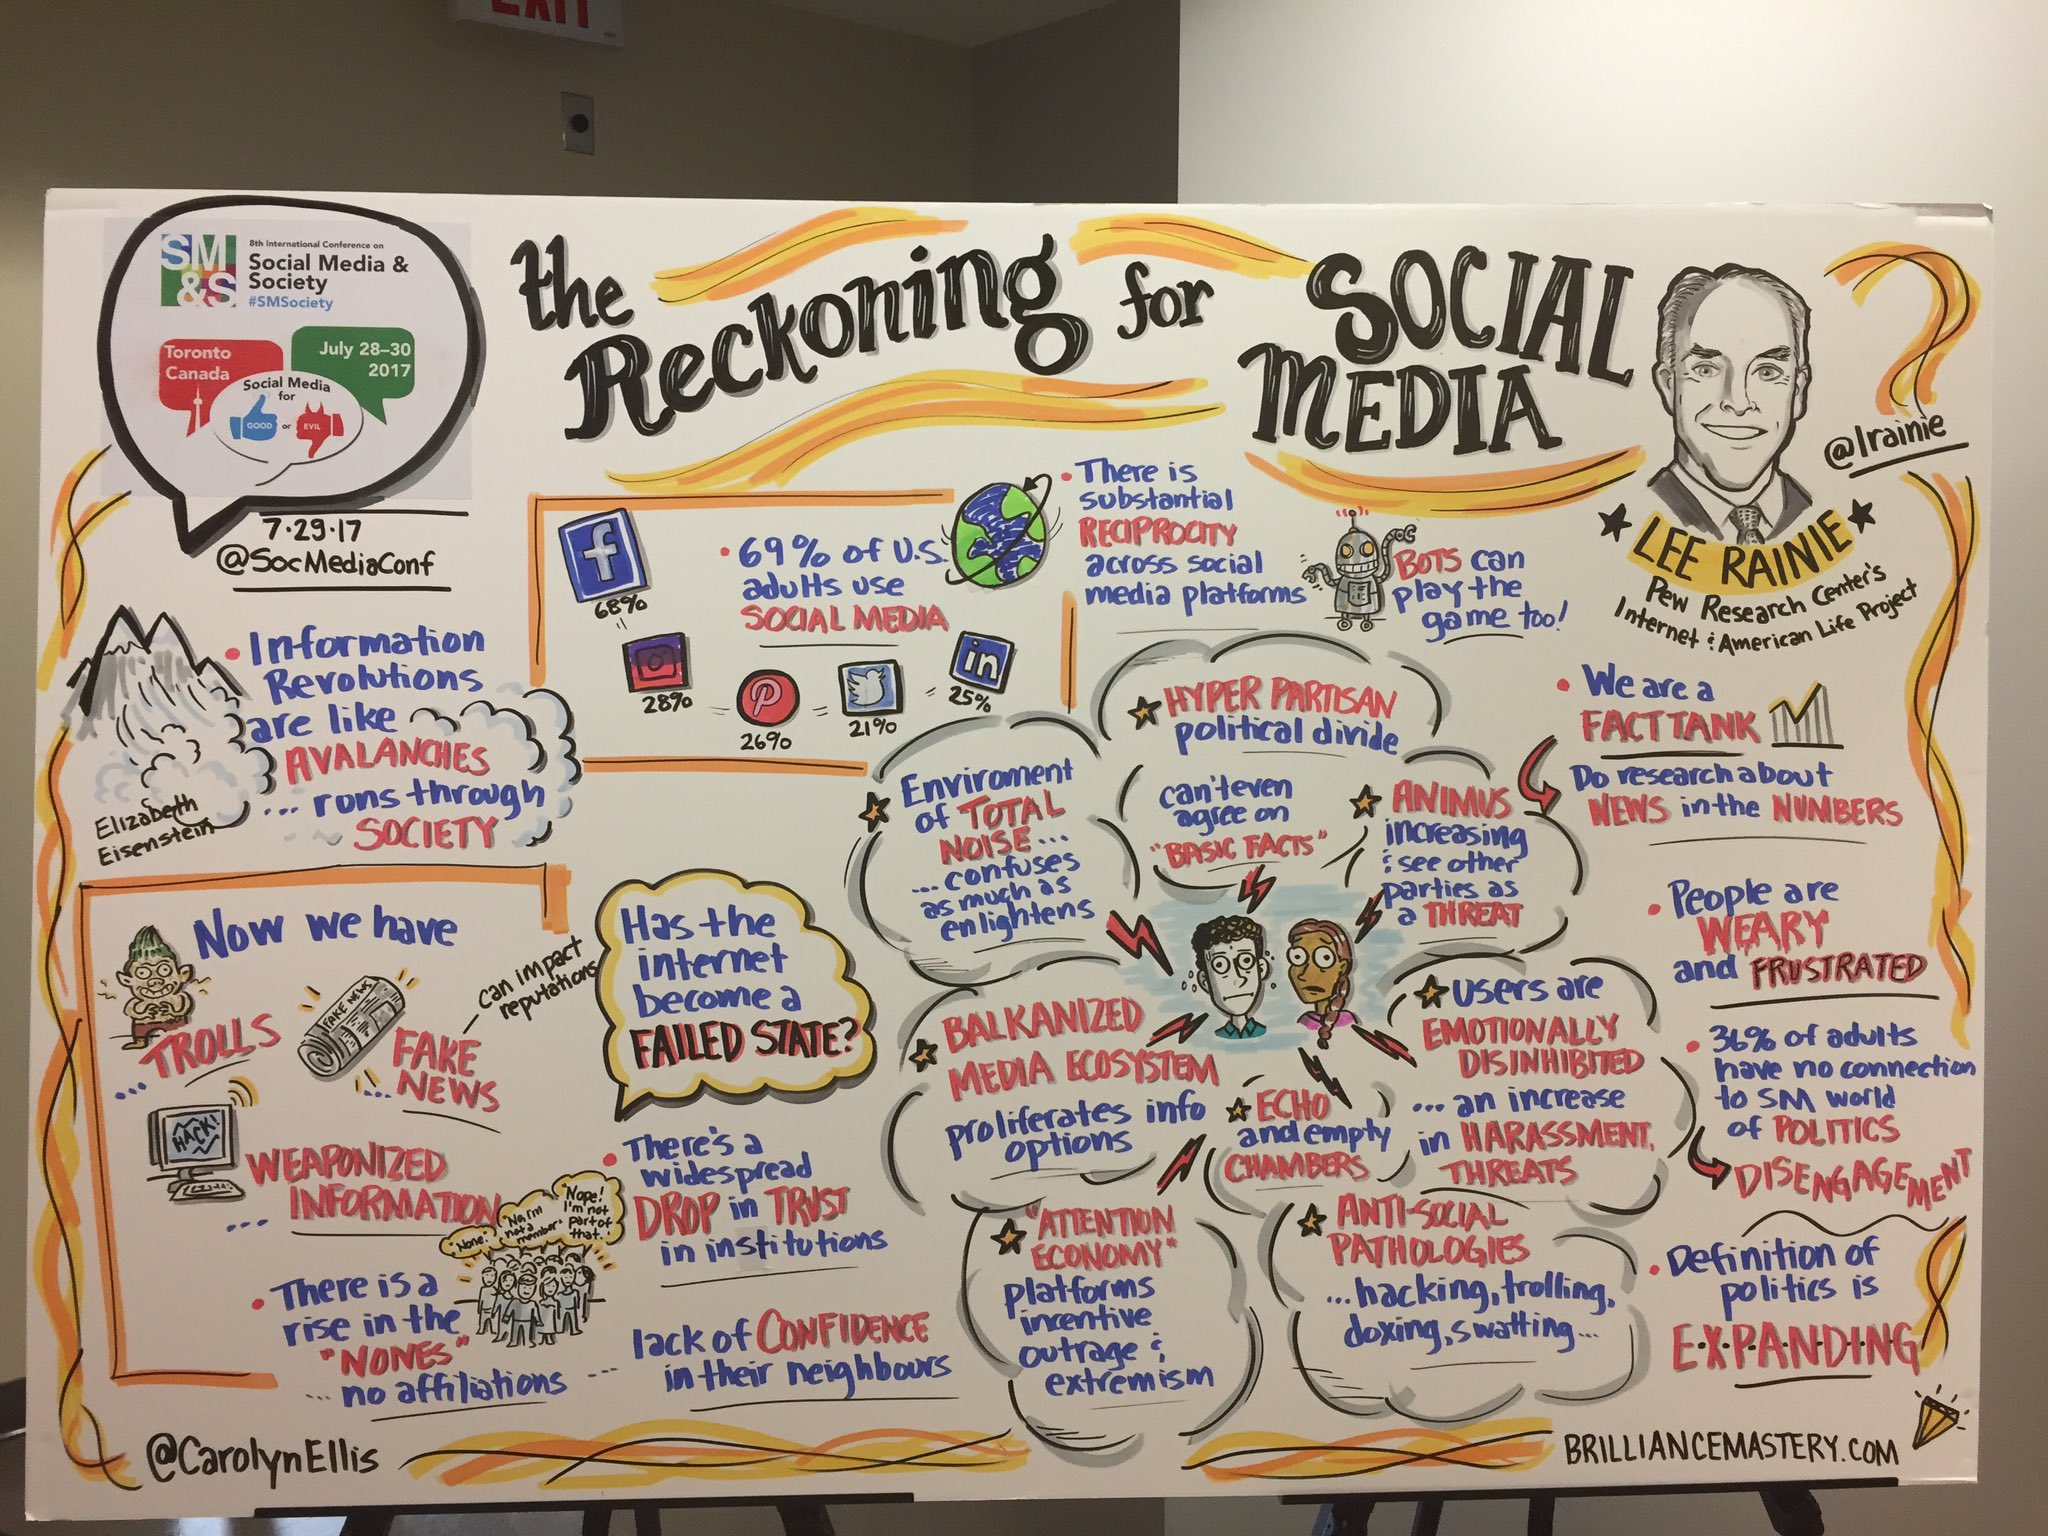 This is so cool! I love it! Live visualisation of @lrainie keynote at #SMSociety Great work @carolynellis https://t.co/2V8Leismcz